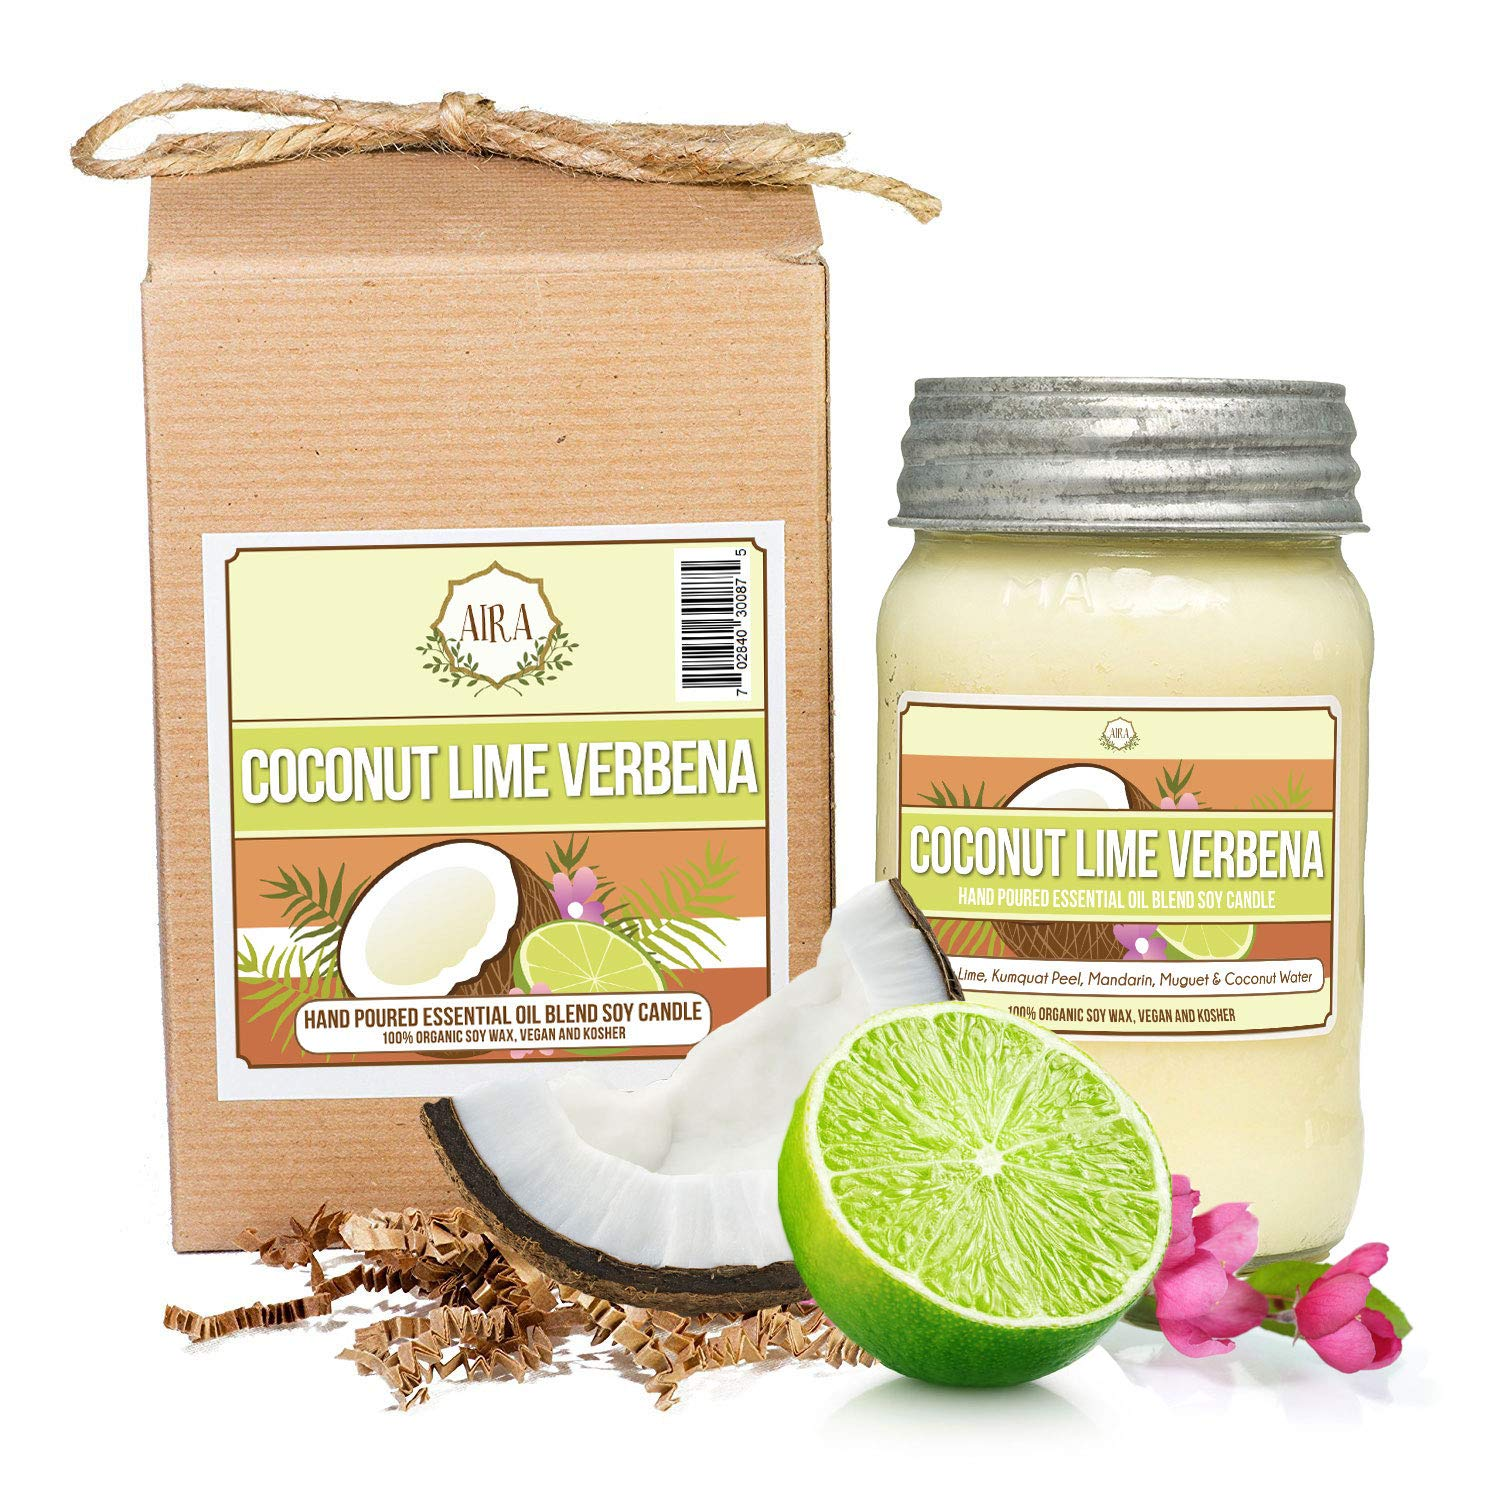 Aira Soy Candles - Organic, Kosher, Vegan, in Mason Jar w/Therapeutic Grade Essential Oil Blends - Hand-Poured 100% Soy Candle Wax - Paraffin Free, Burns 110+ Hours - Coconut Lime Verbena - 16 Ounces